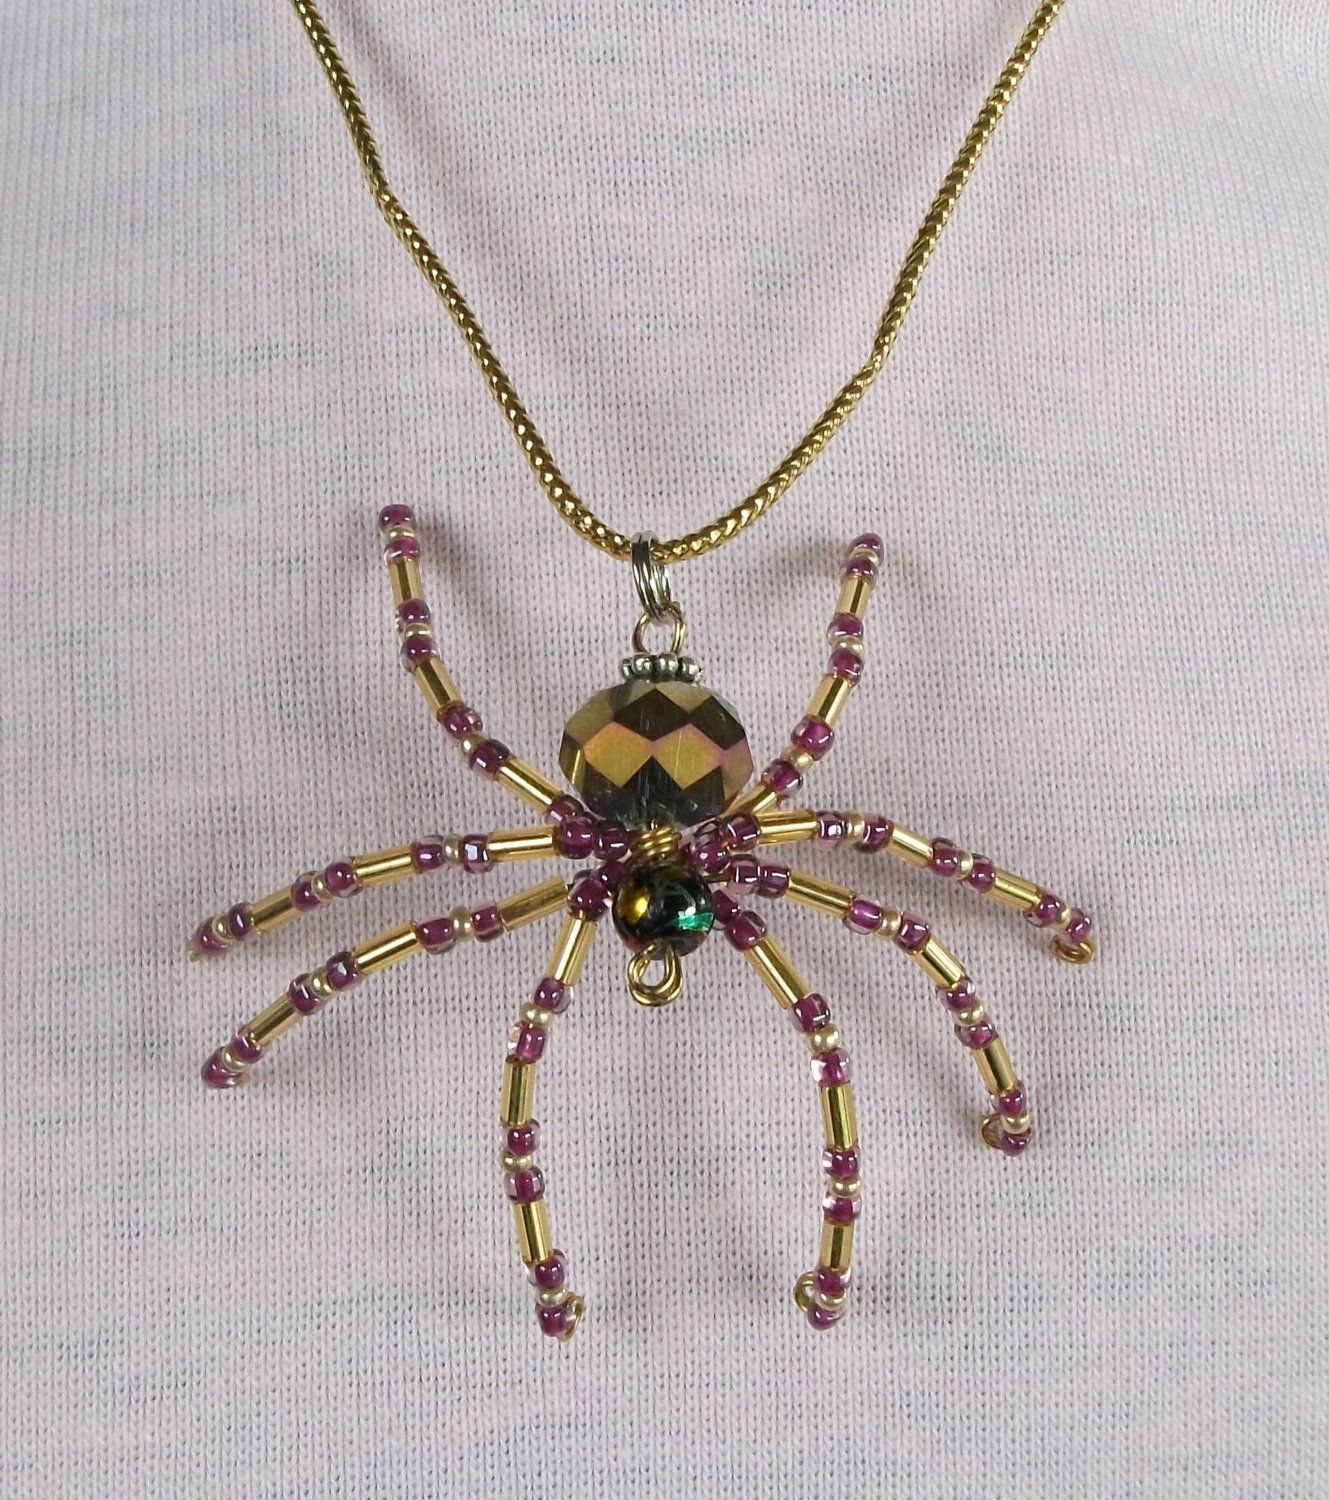 Beaded spider pendant necklace 1000 via etsy design beaded spider pendant necklace 1000 via etsy aloadofball Image collections